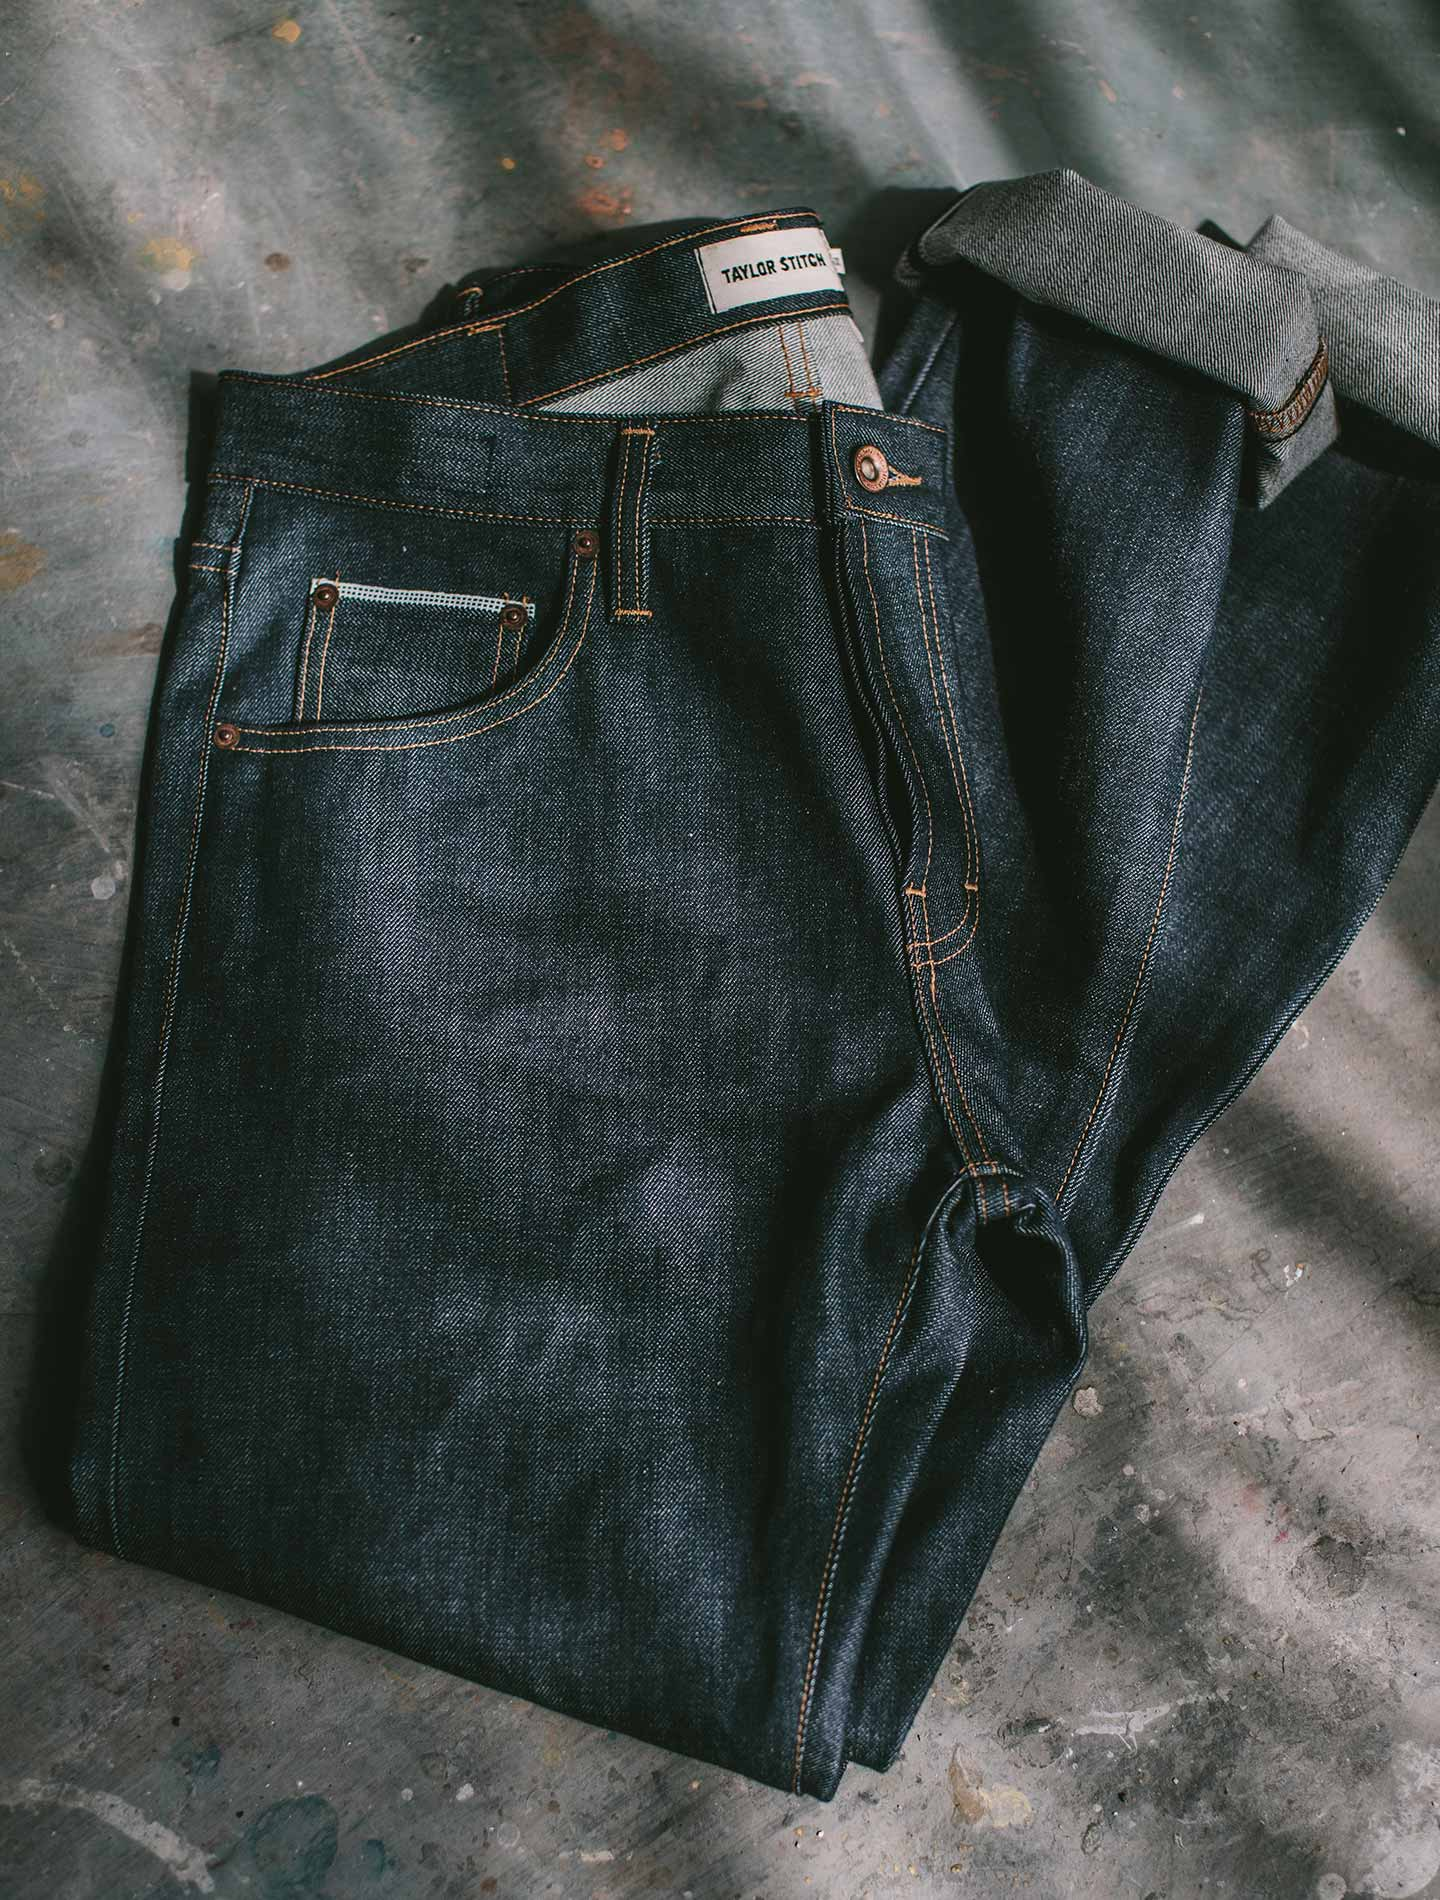 A pair of American-Made jeans.